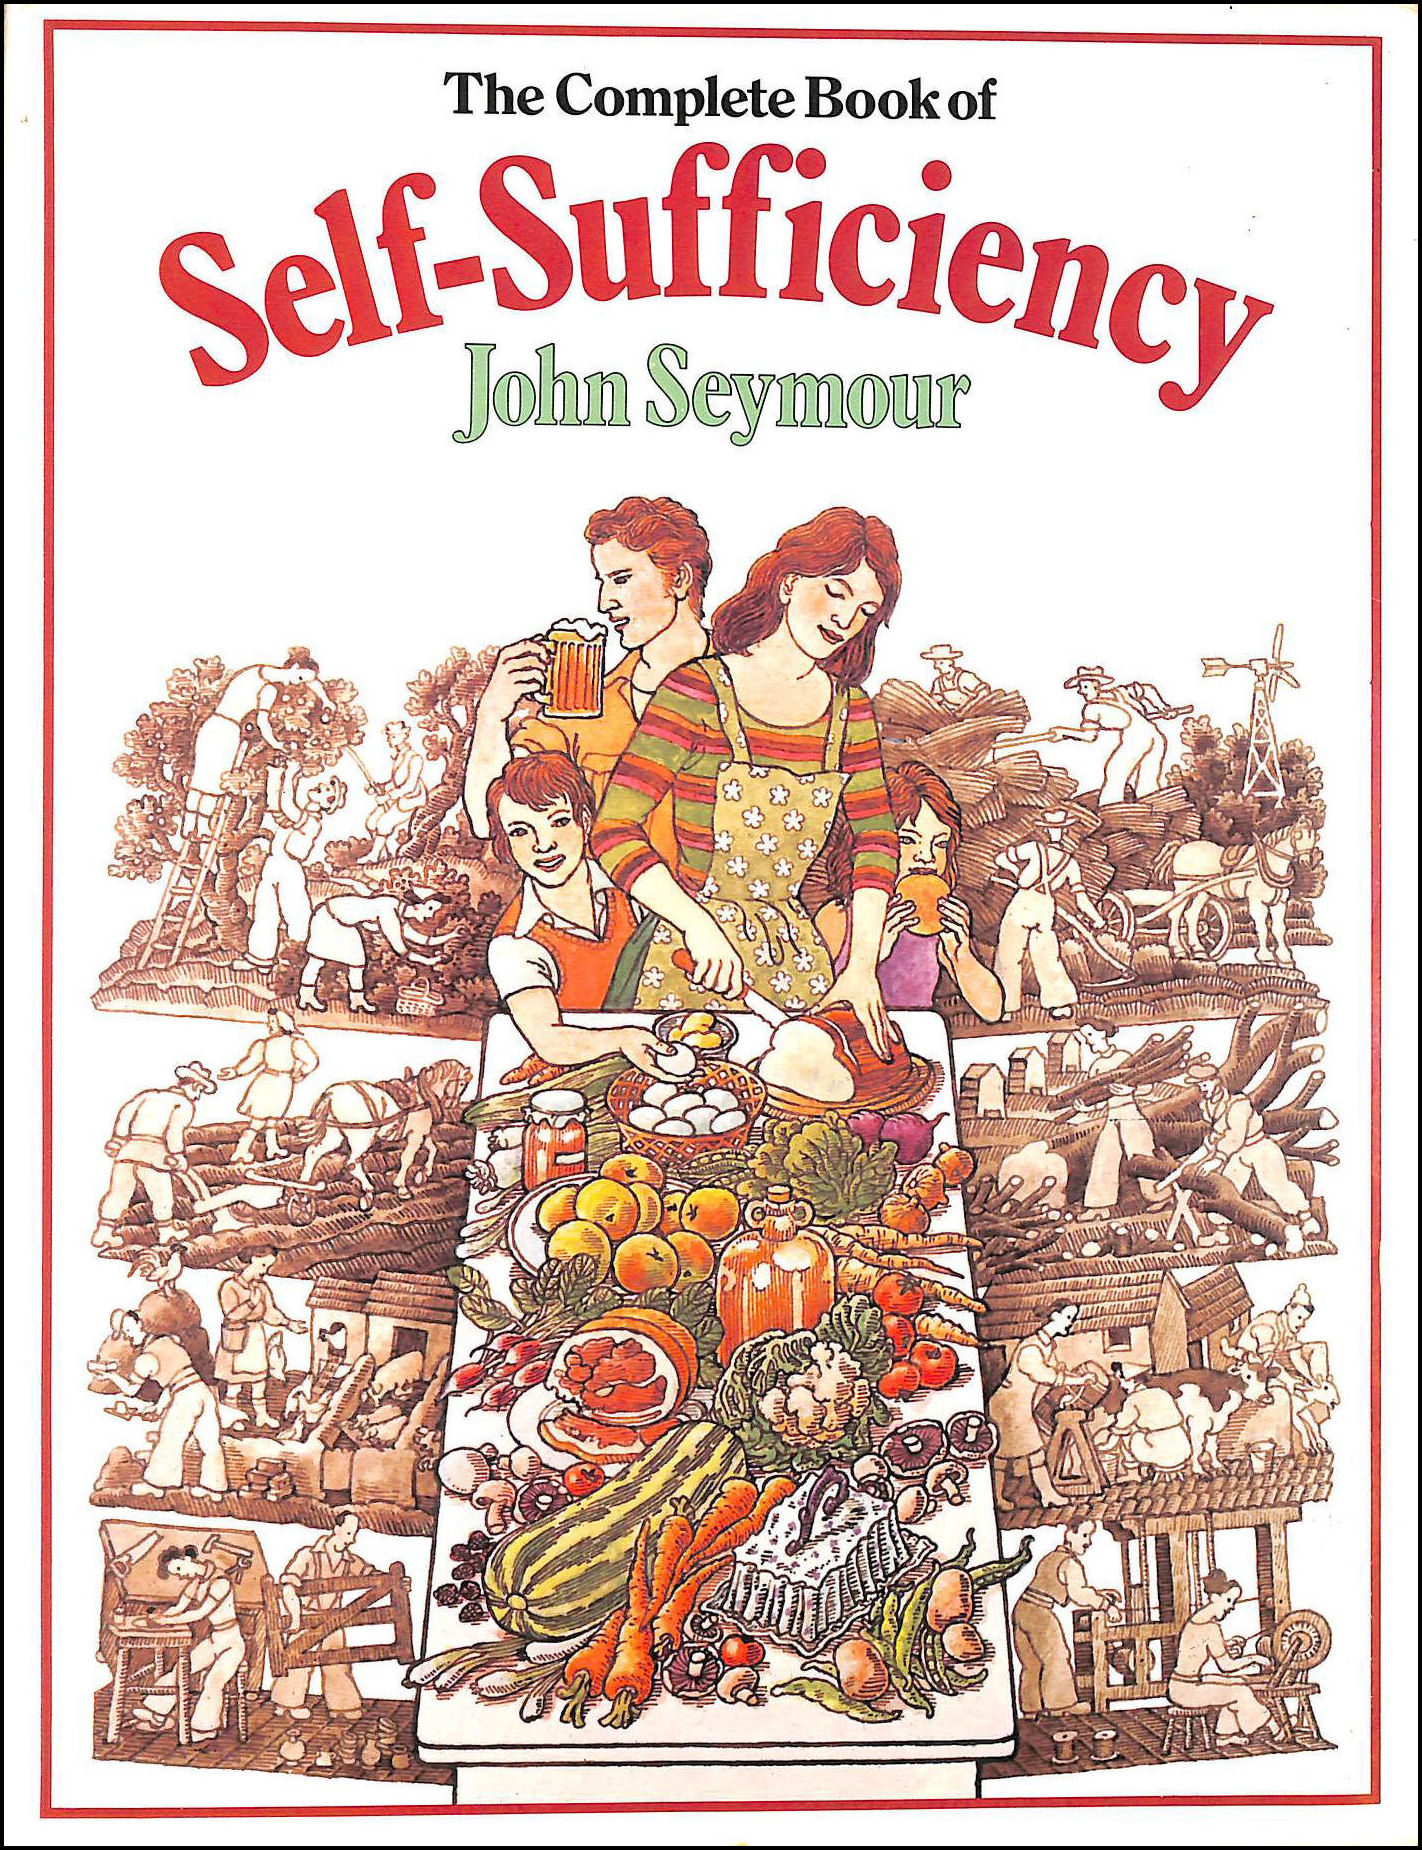 The Complete Book of Self-Sufficiency, John Seymour; E. F. Schumacher [Foreword]